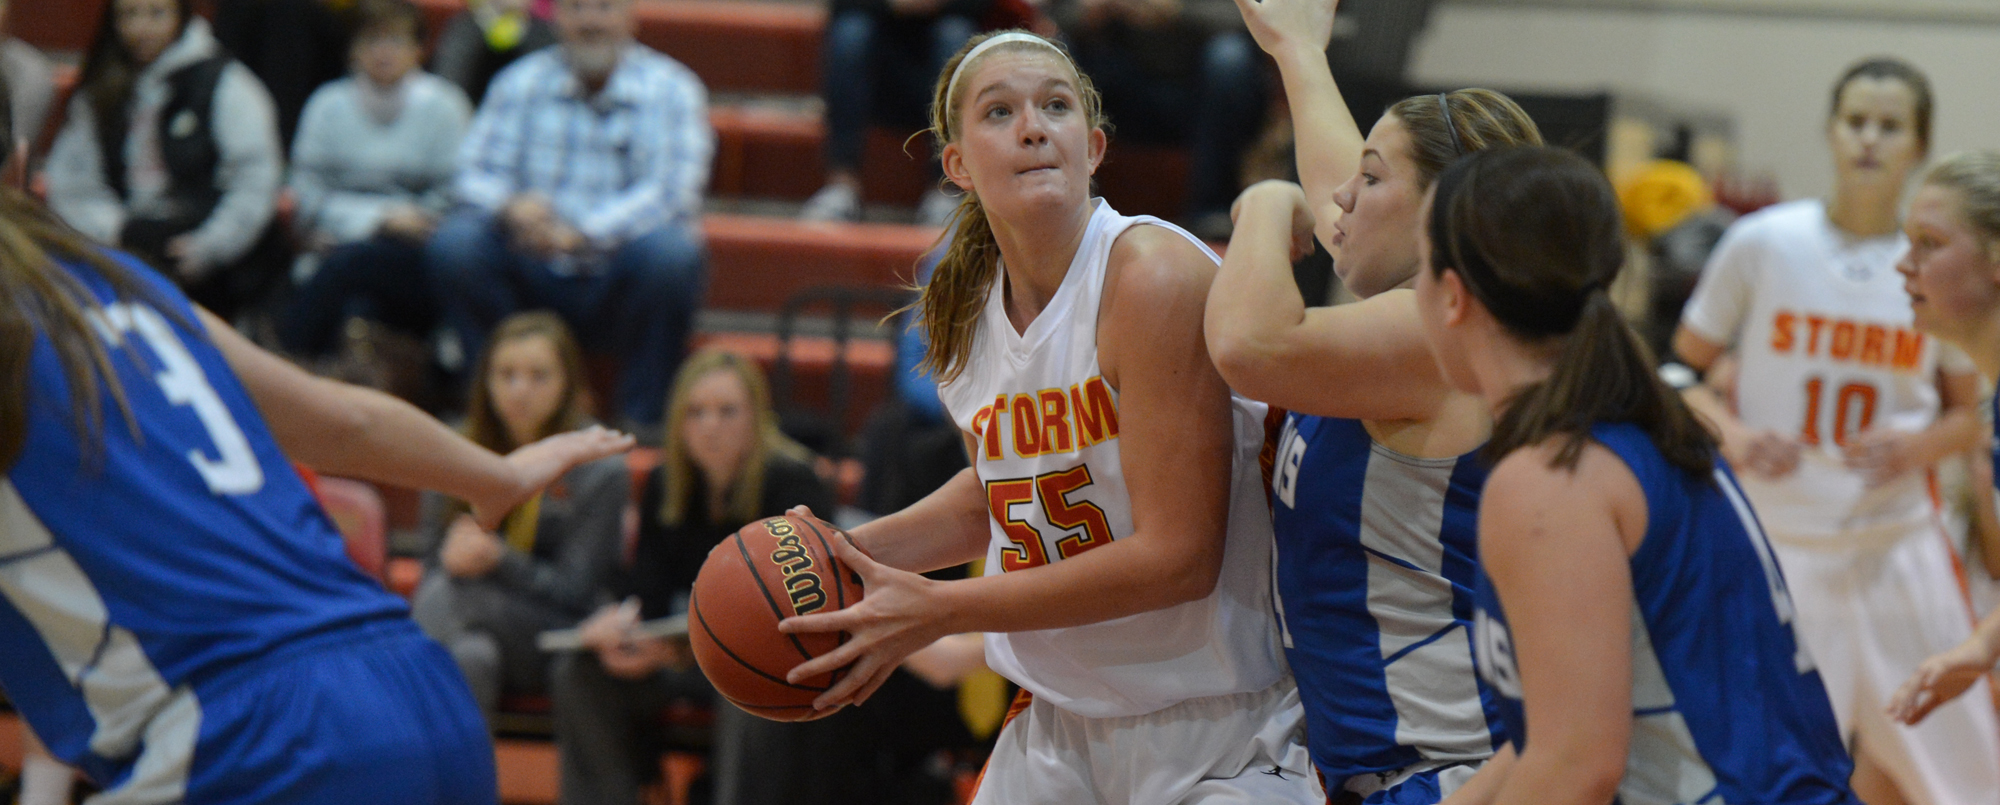 Morrow posts double-double in loss to Whitewater